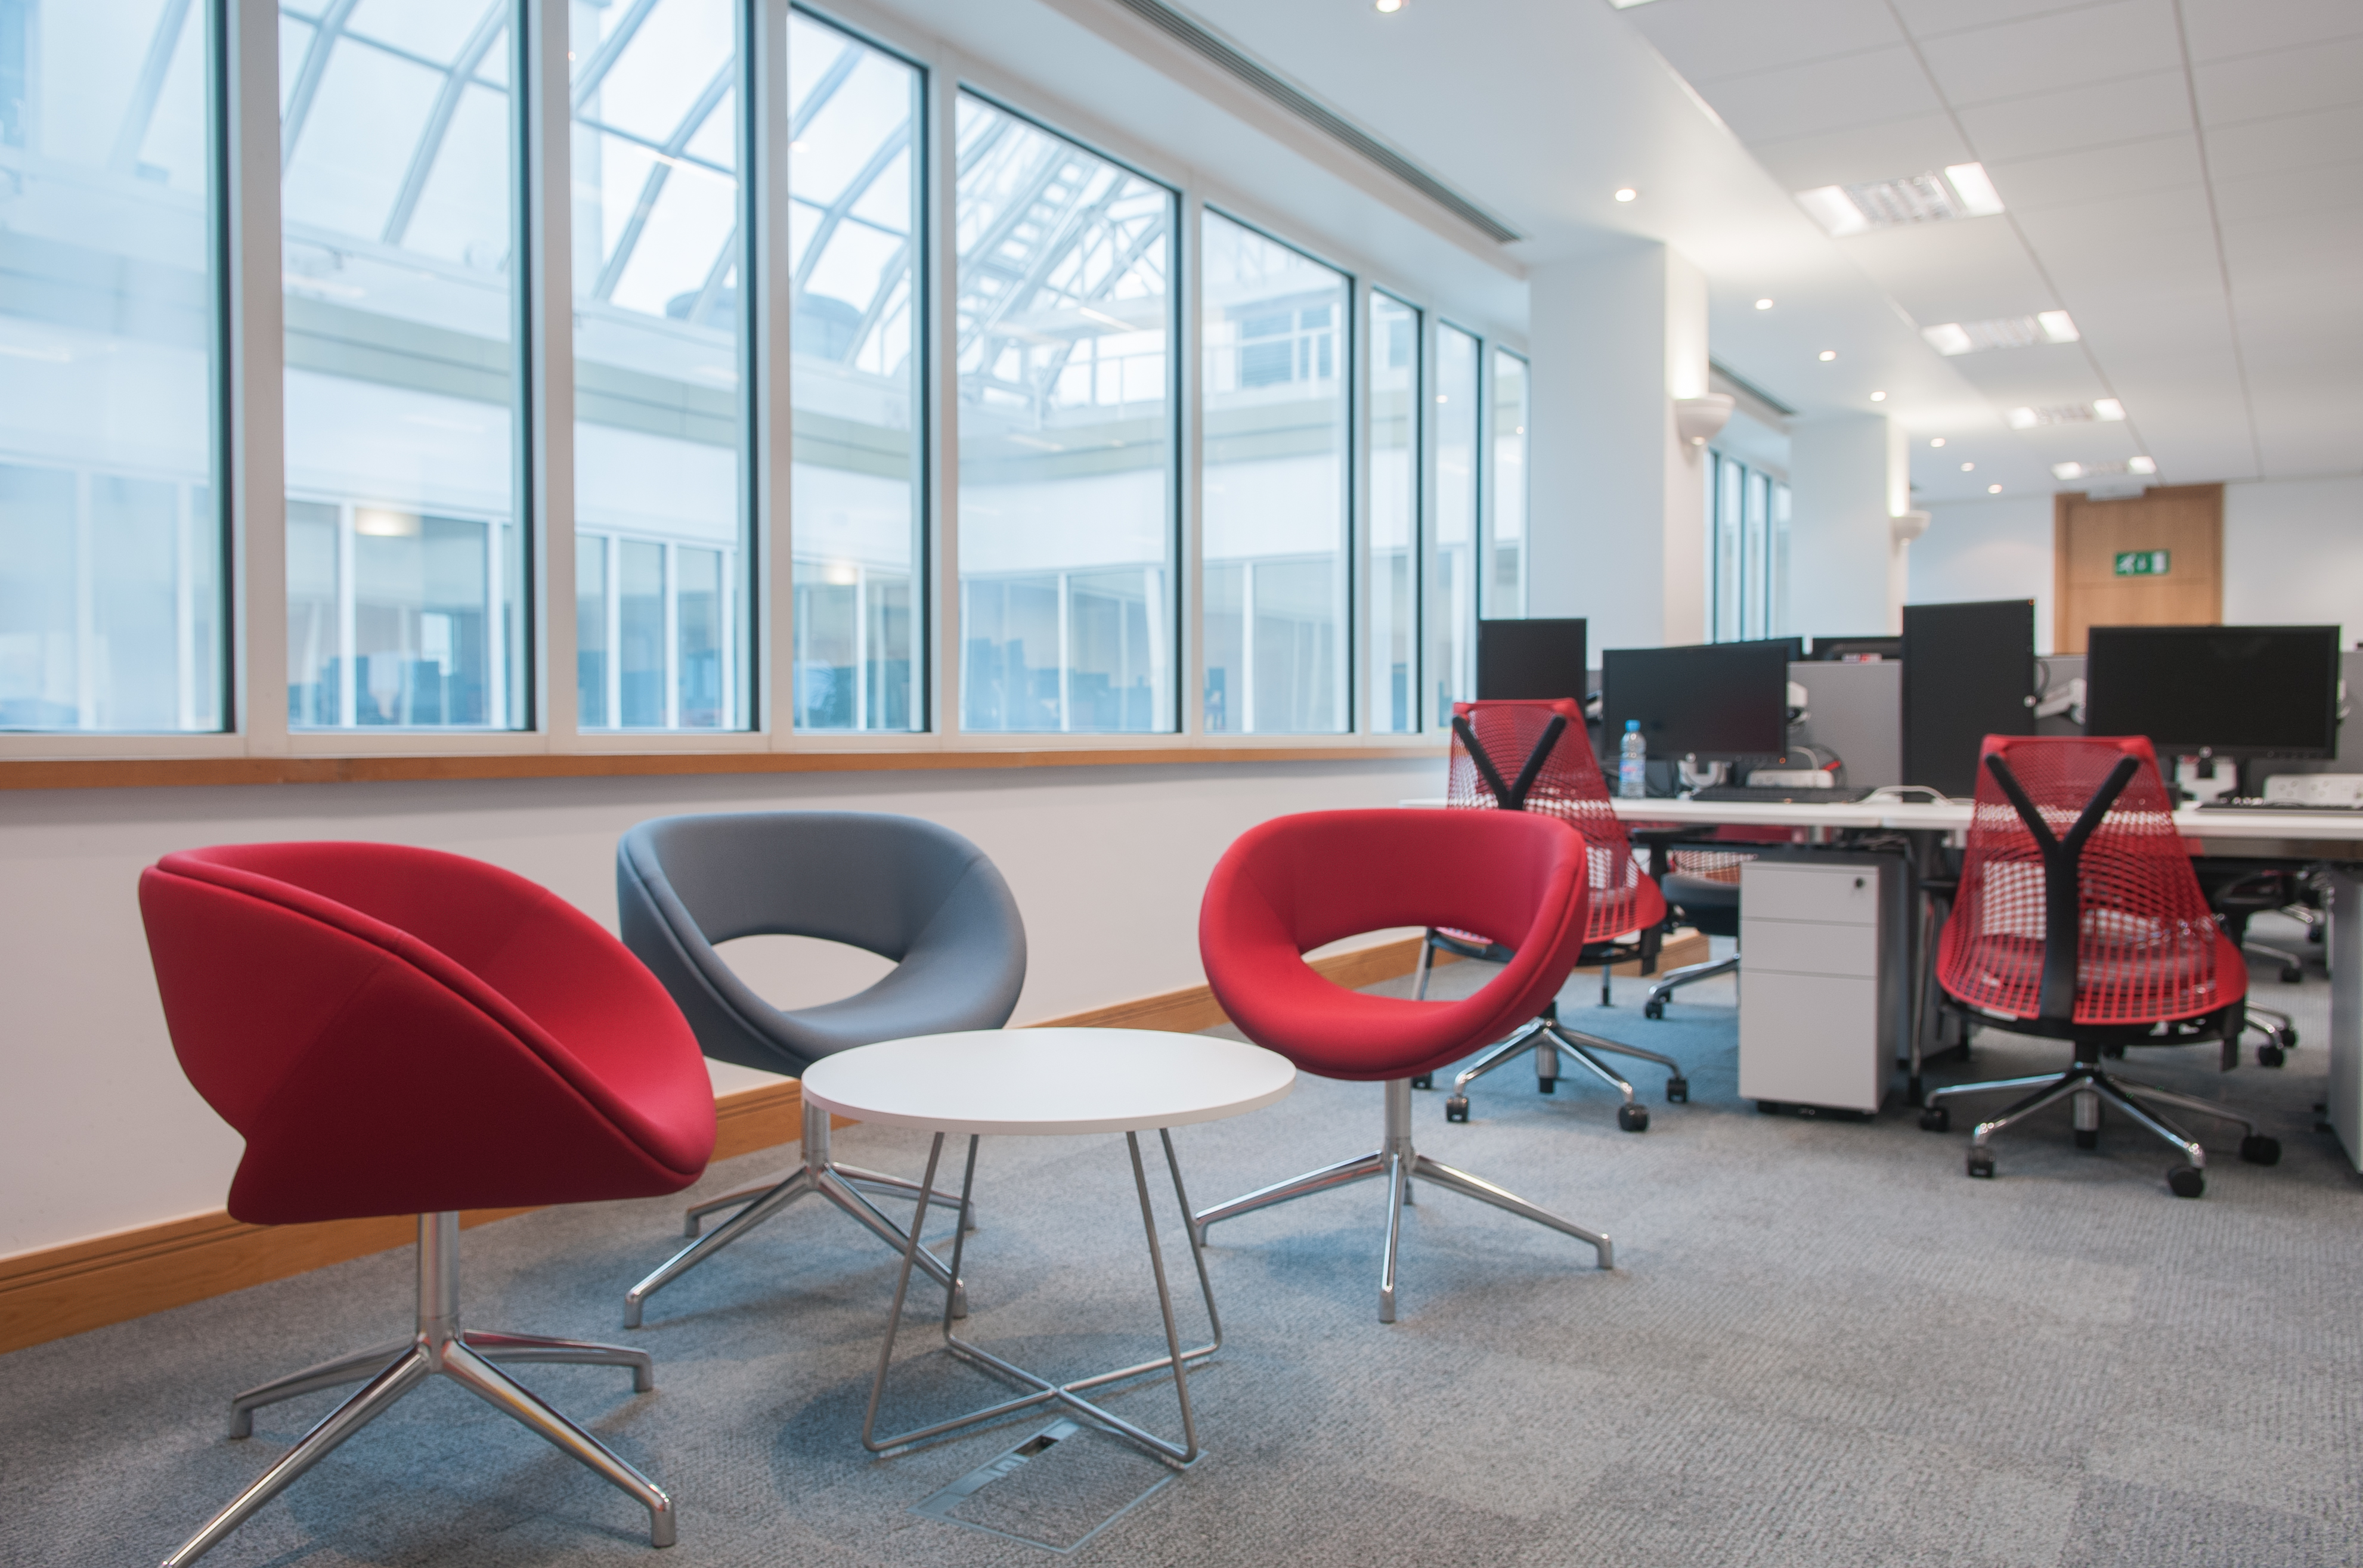 breakout out and workstation office furniture | Novex Solutions